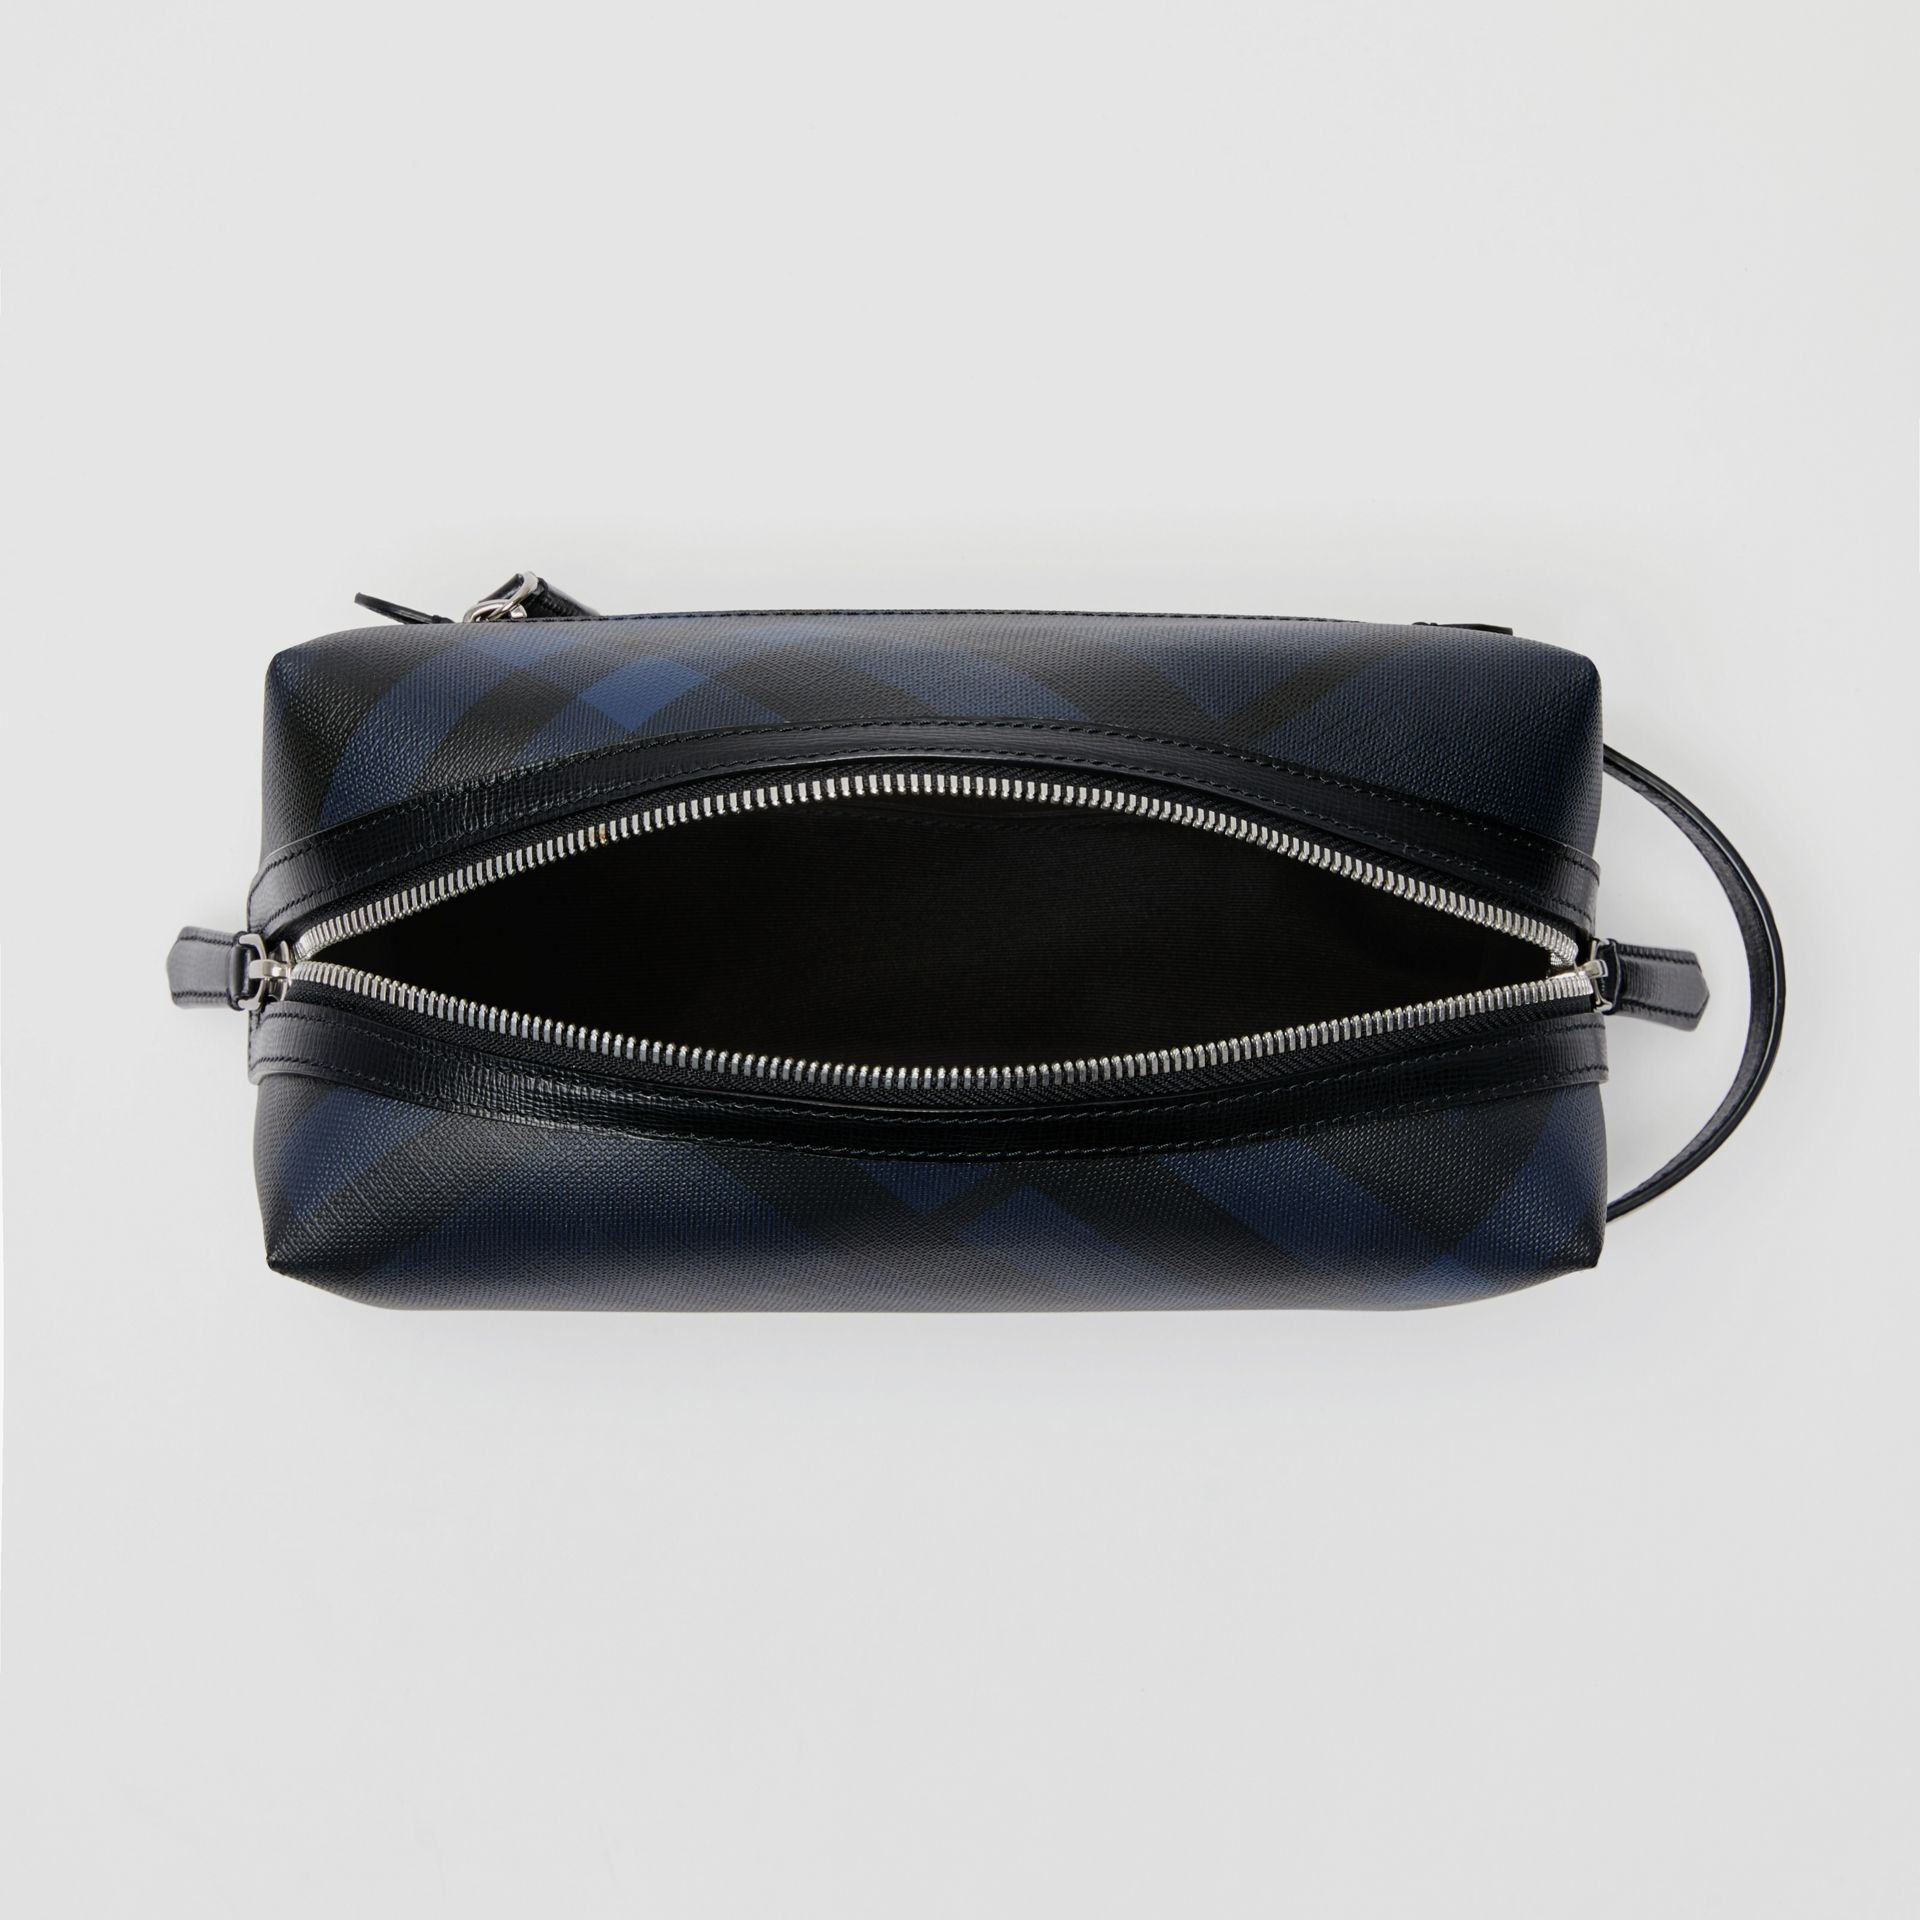 Trousse con pelle e motivo London check (Navy/nero) | Burberry - immagine della galleria 5